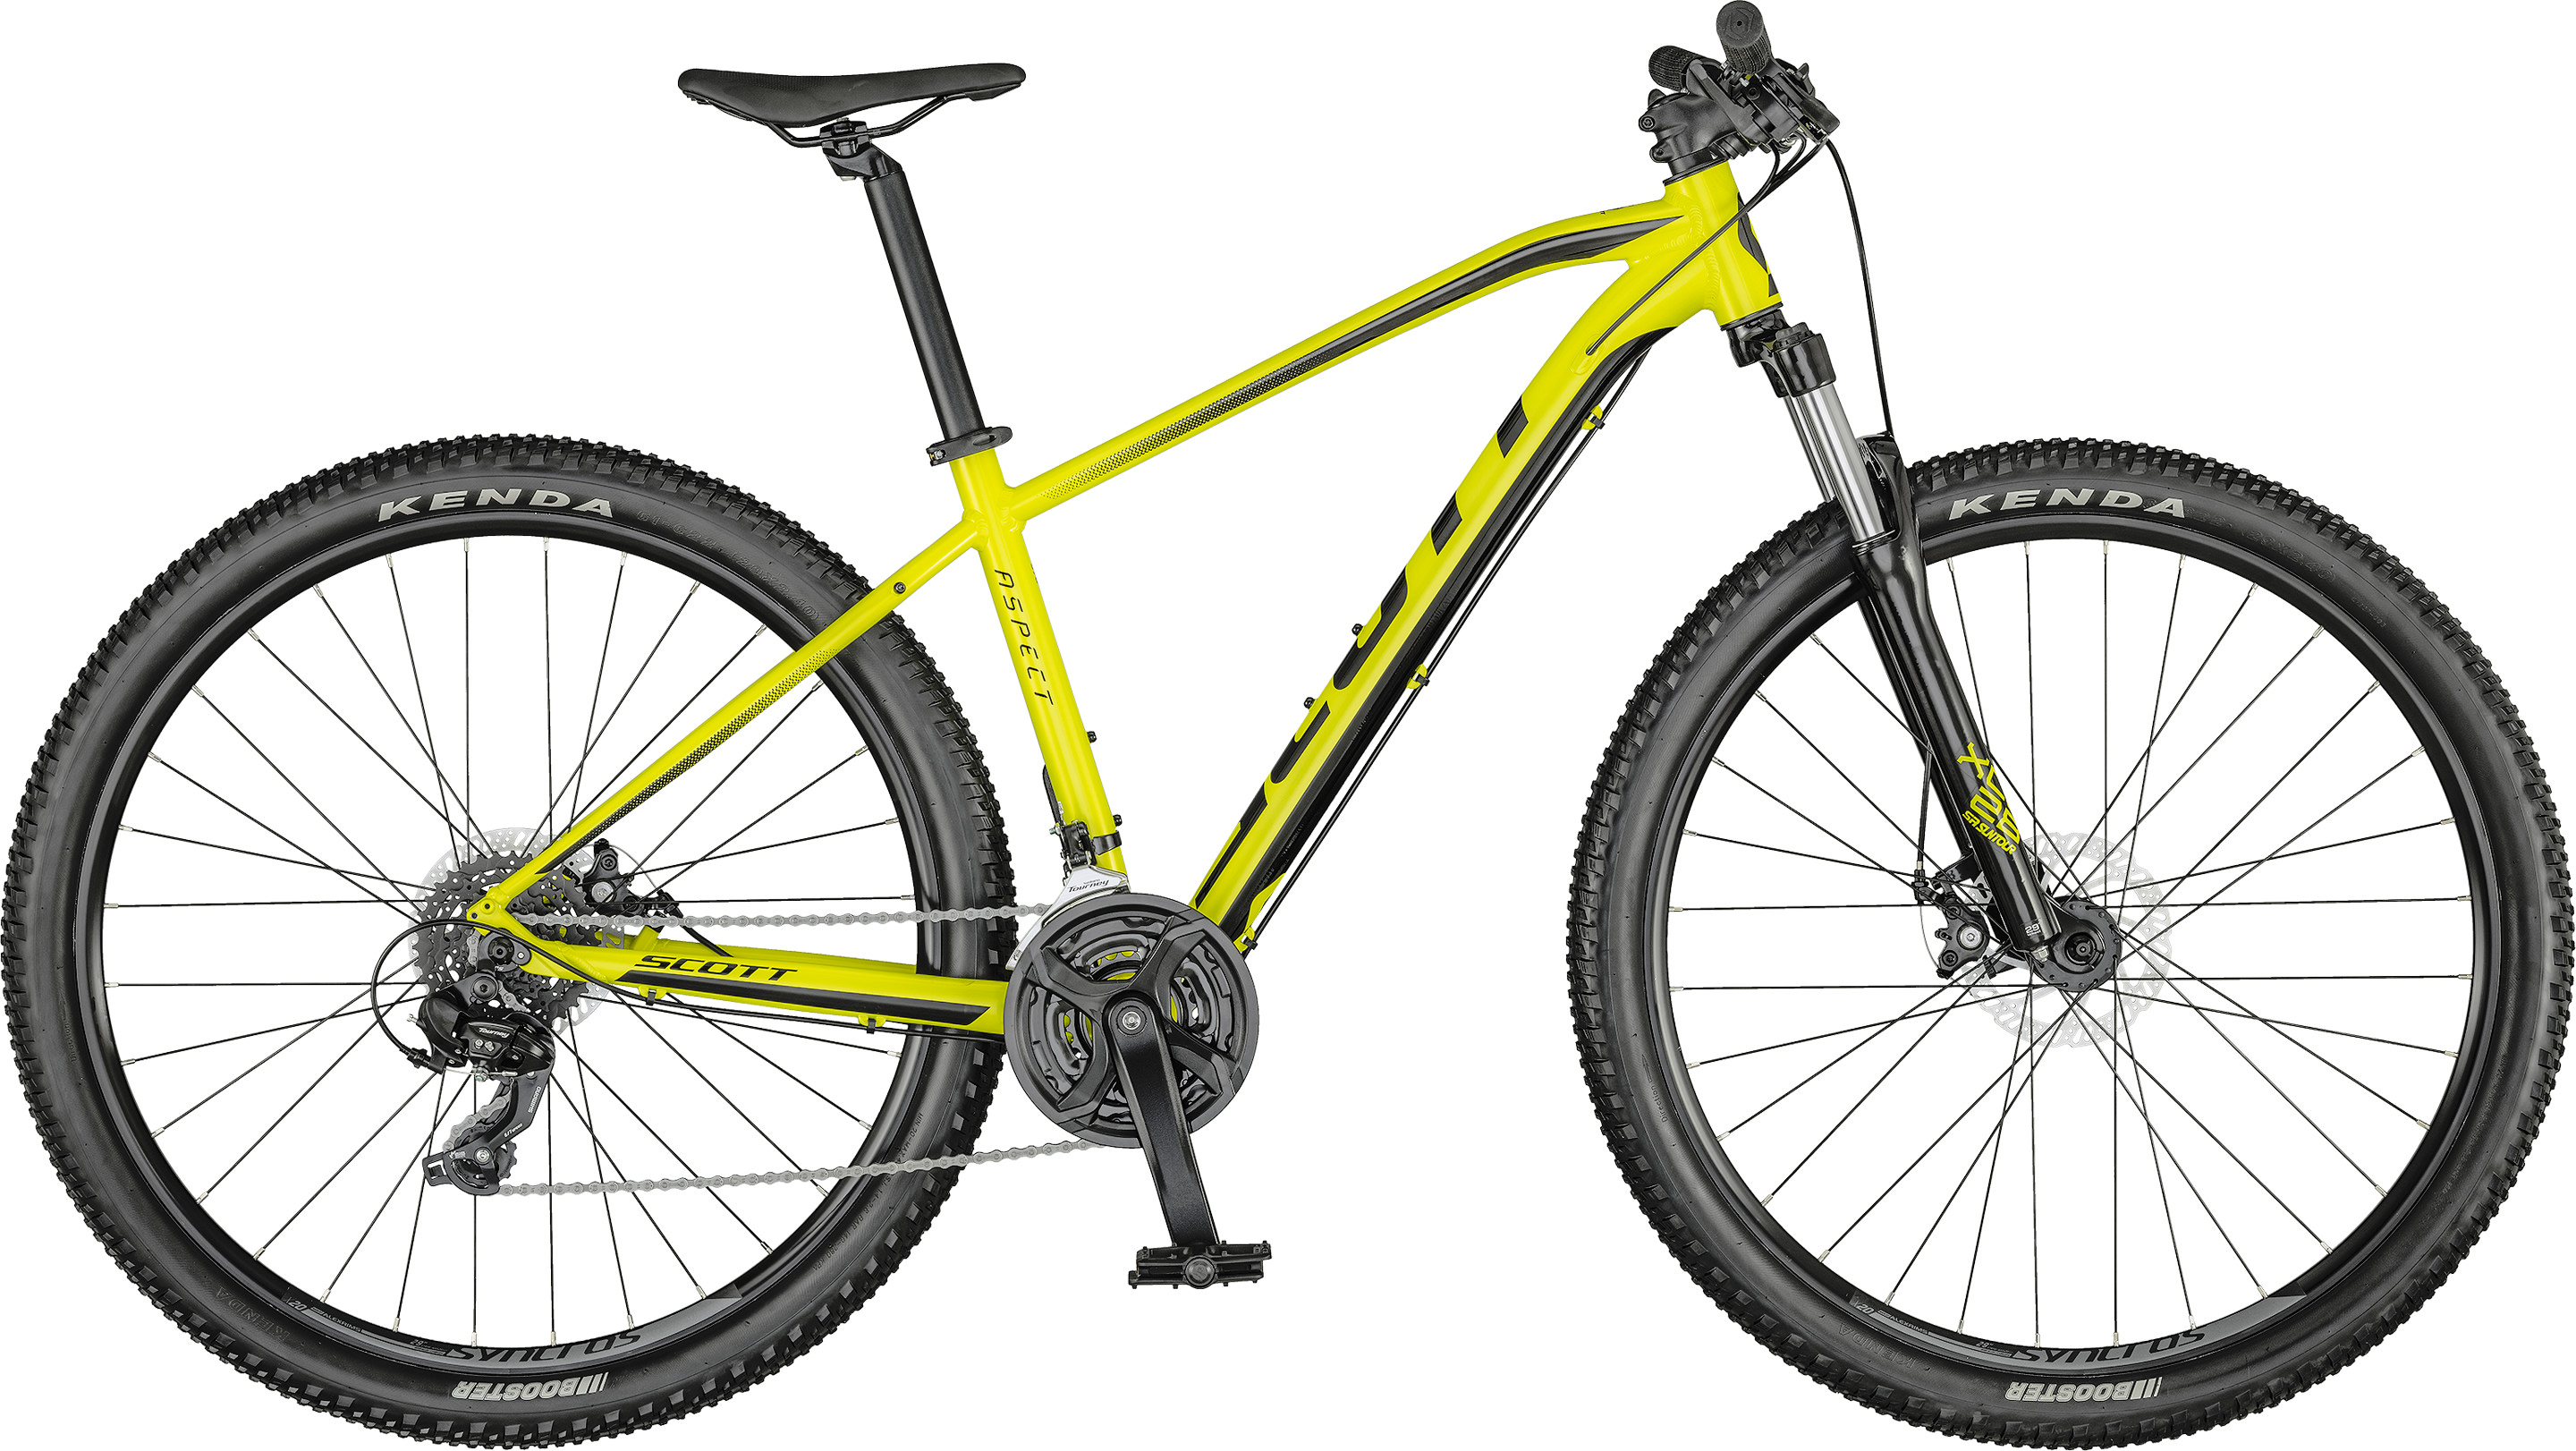 Aspect 770 yellow | Culture Vélo